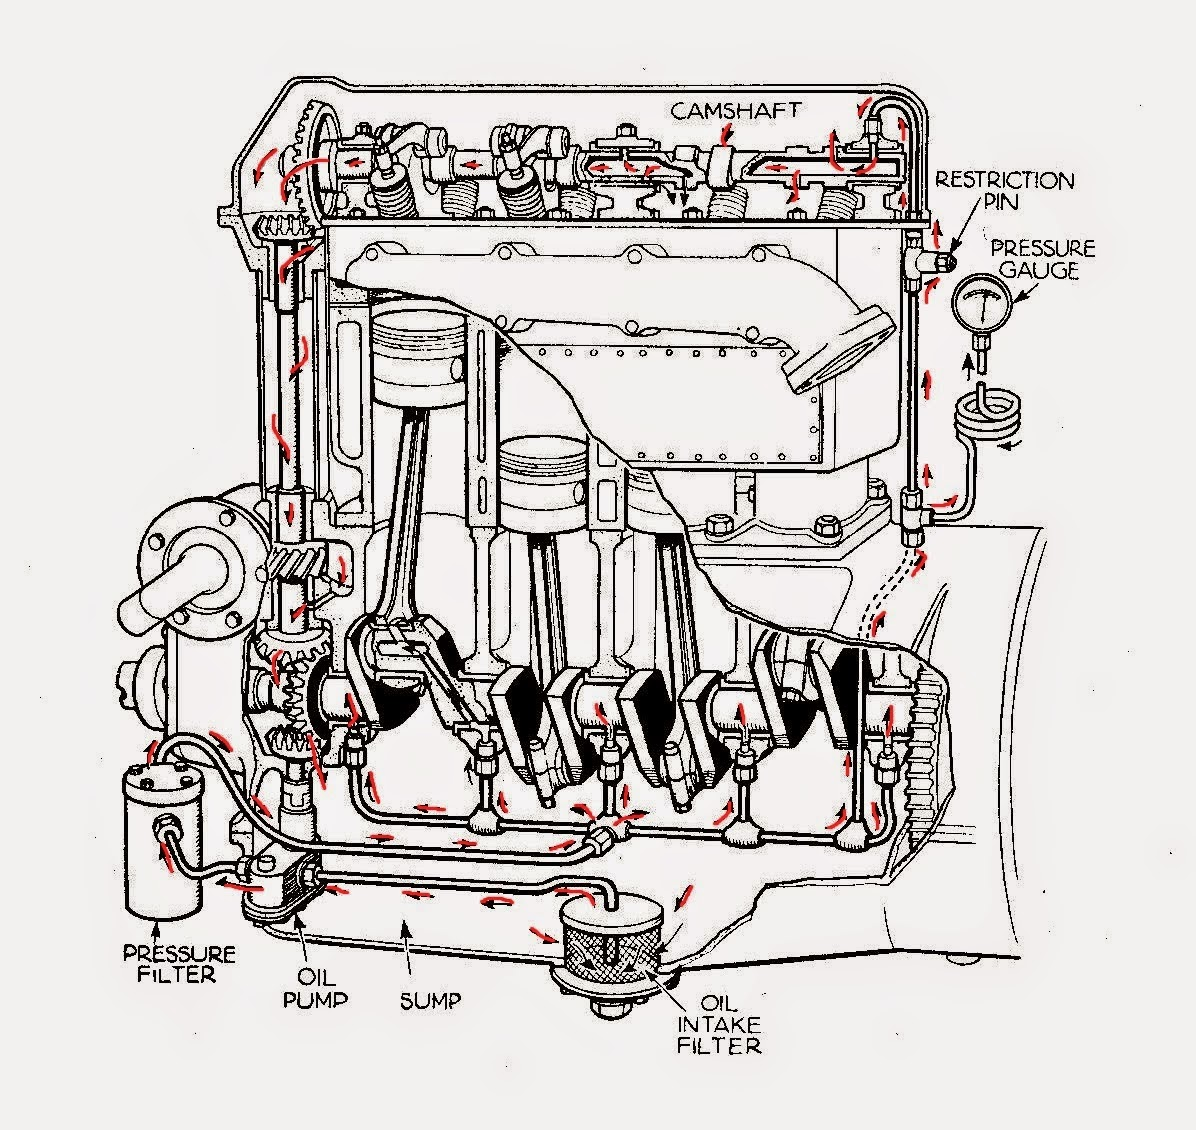 john deere 455 wiring diagram dog brain beza oil pump dan piston ring